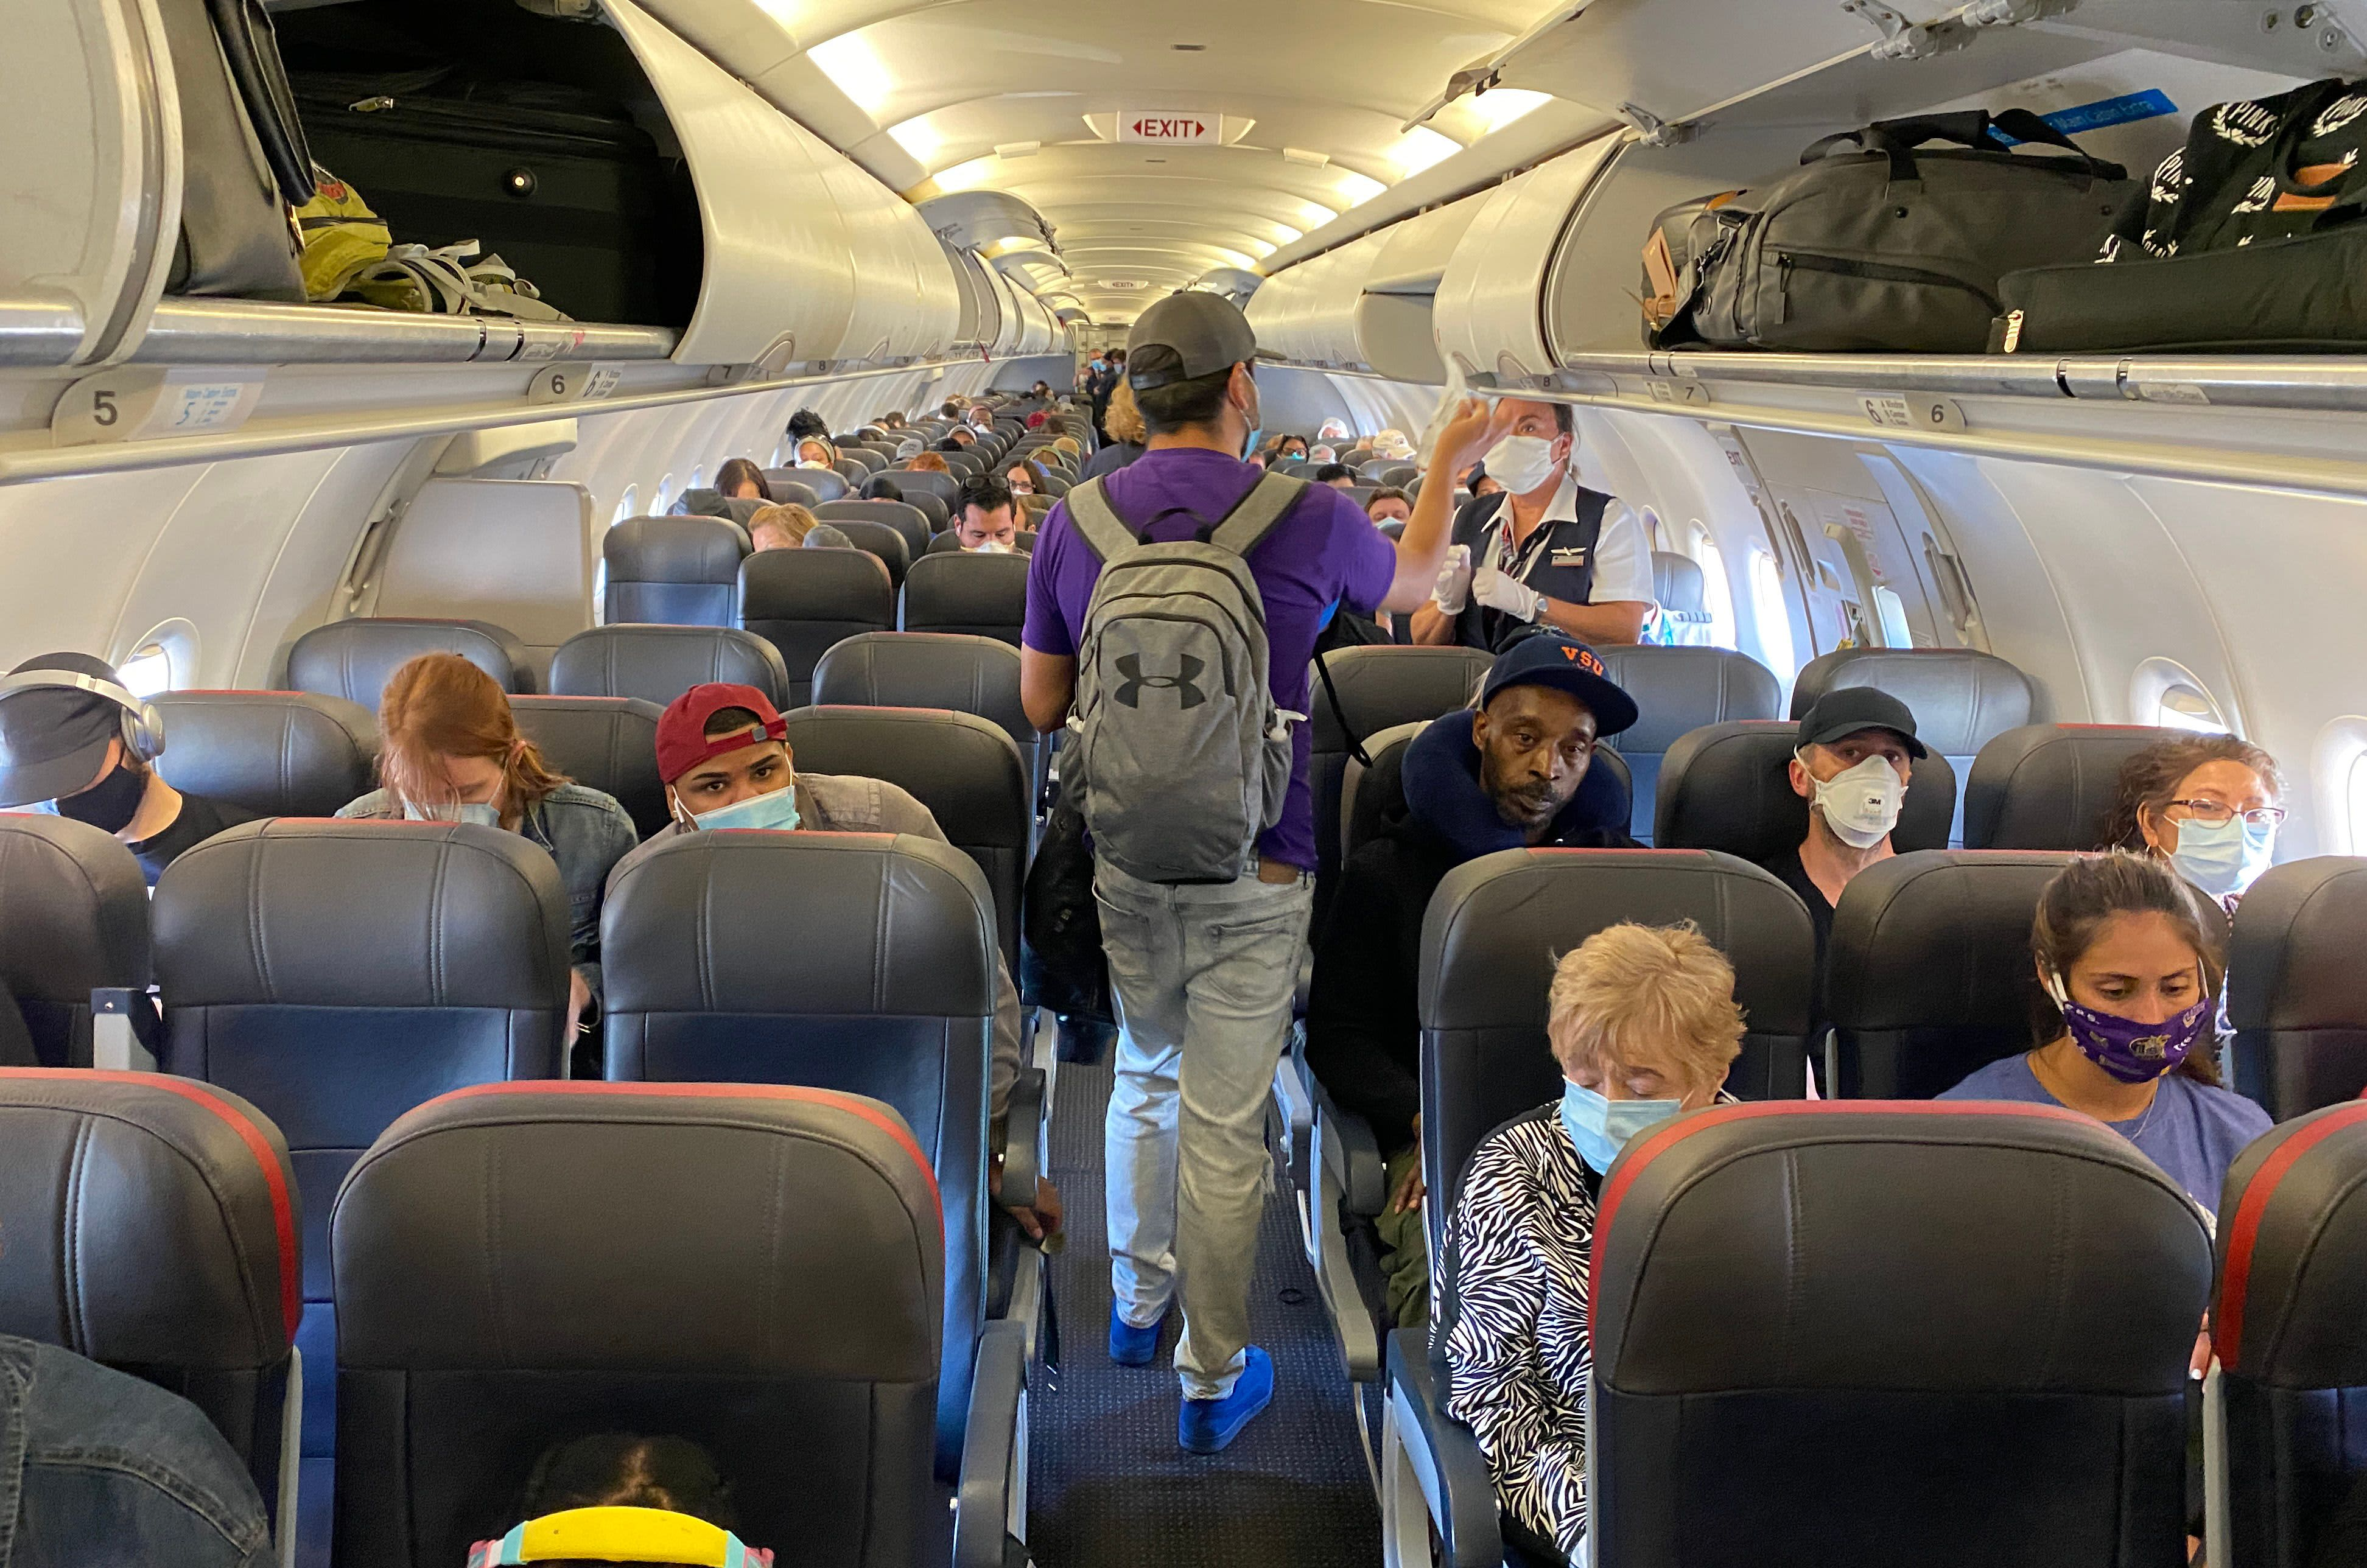 Biden signs order requiring travelers wear masks on planes and at airports as pandemic rages